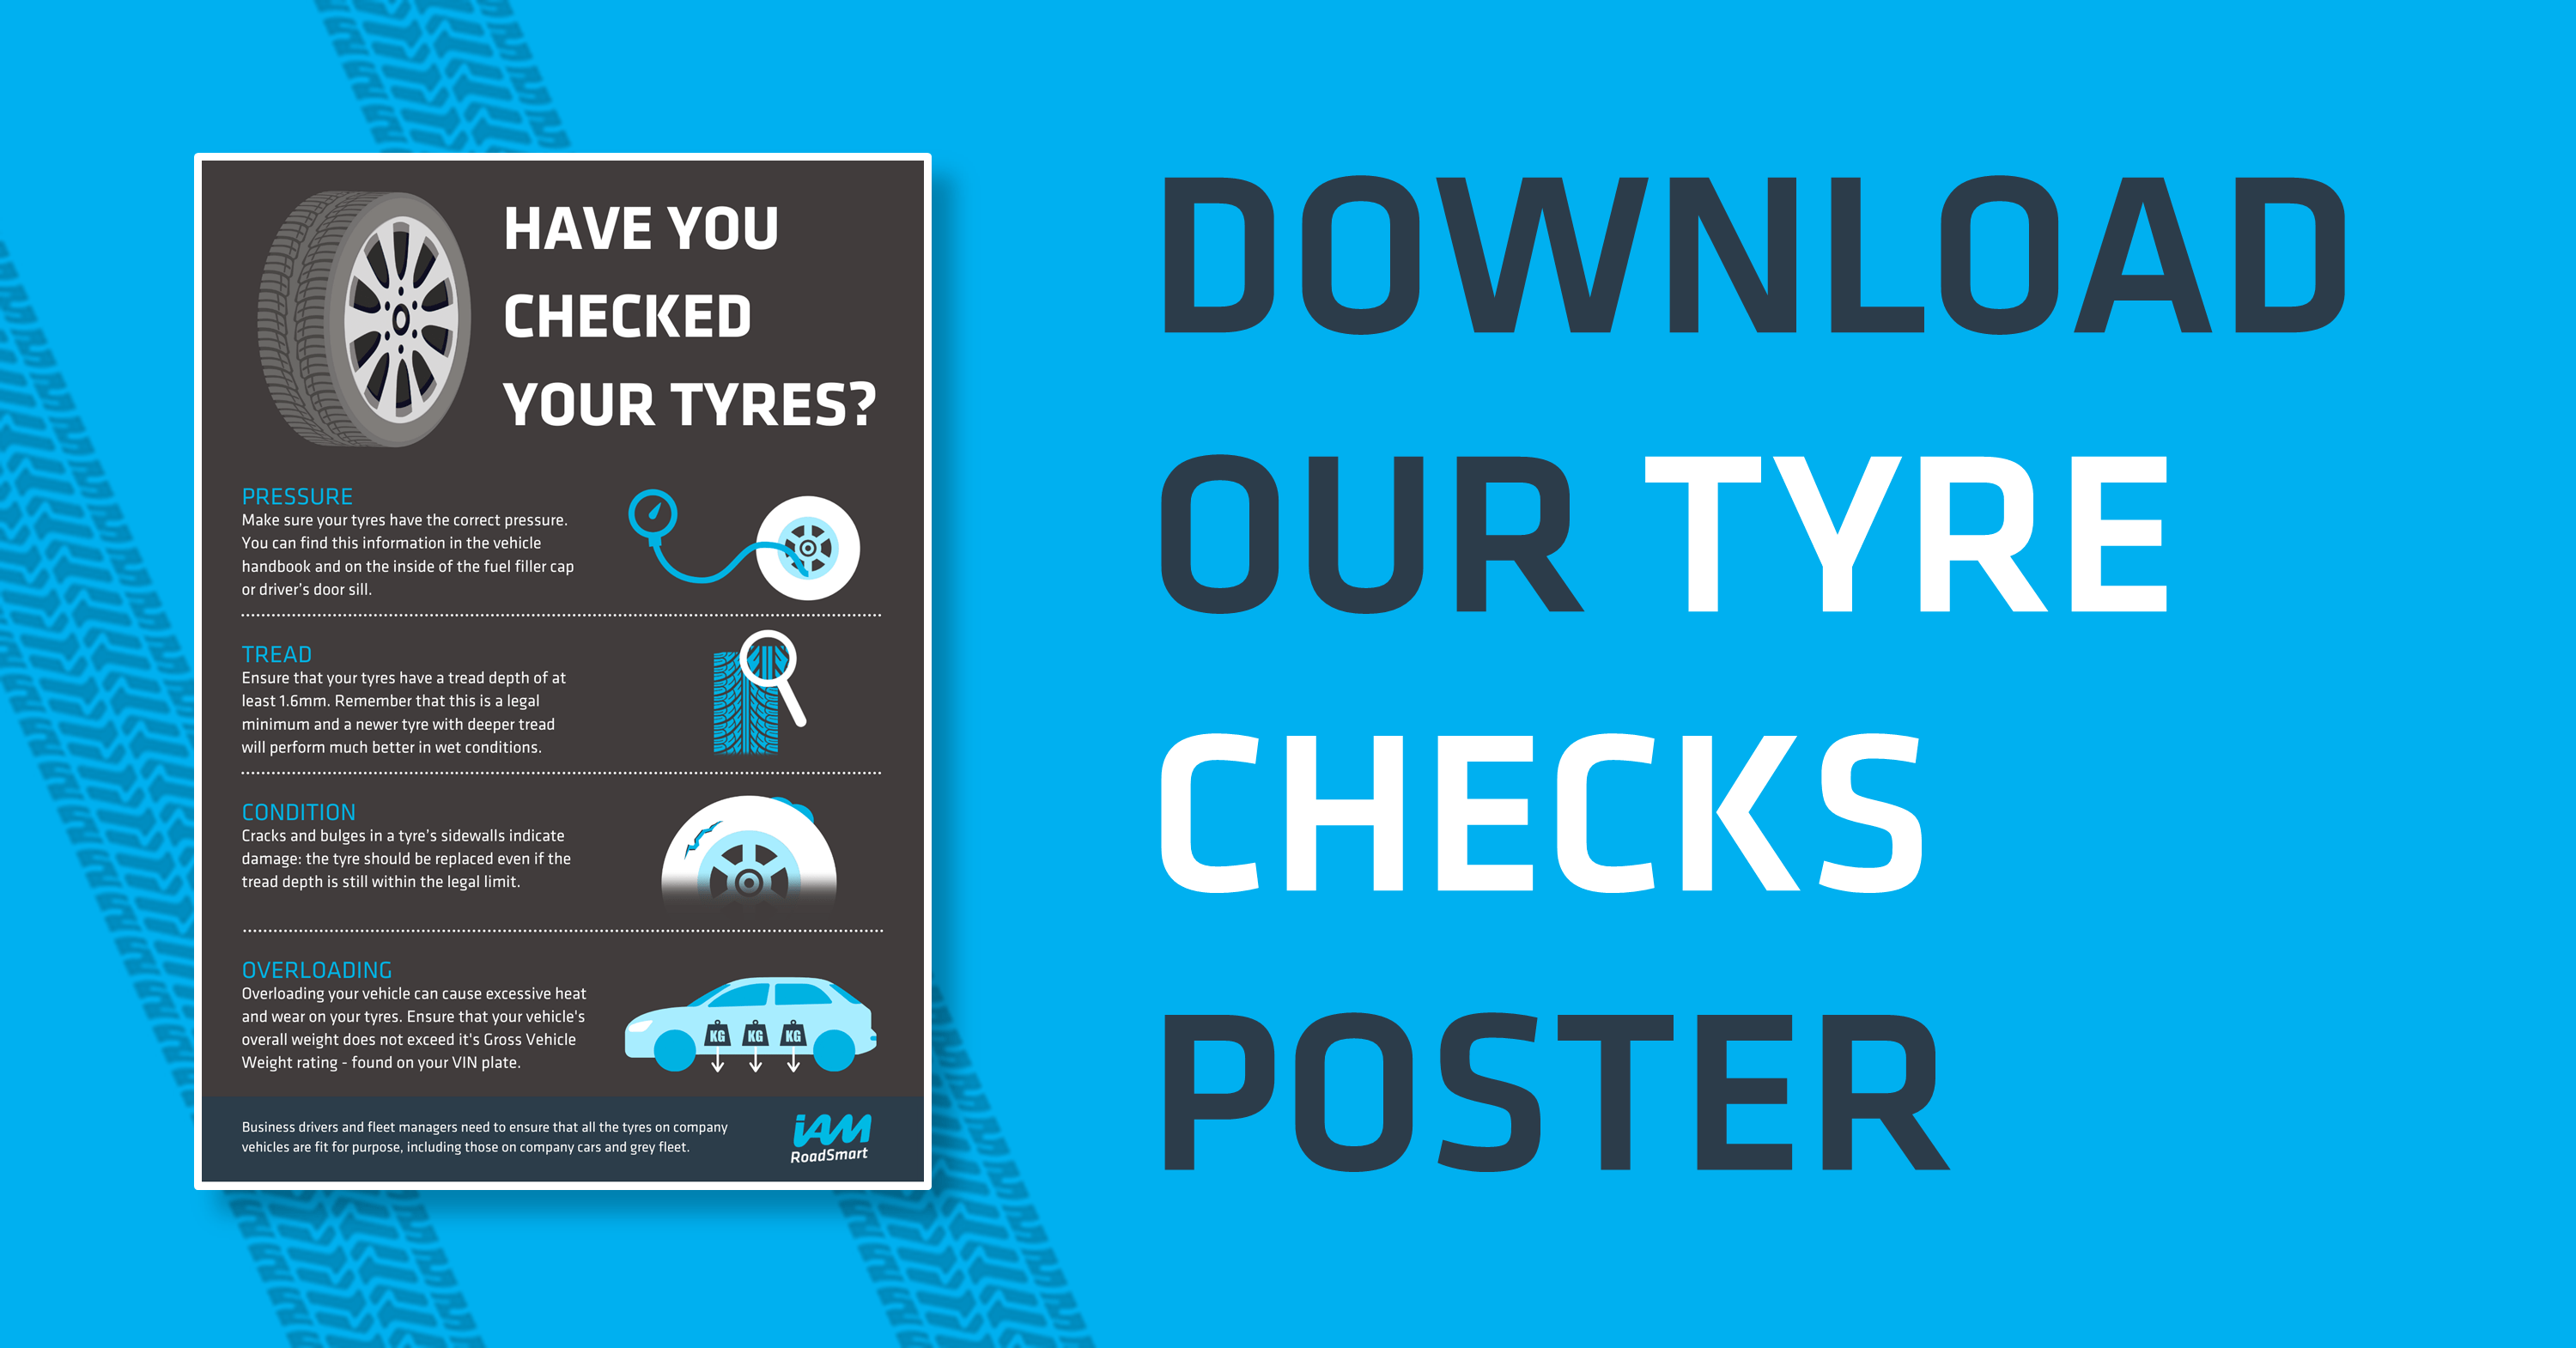 Tyre Safety – Tips and Poster